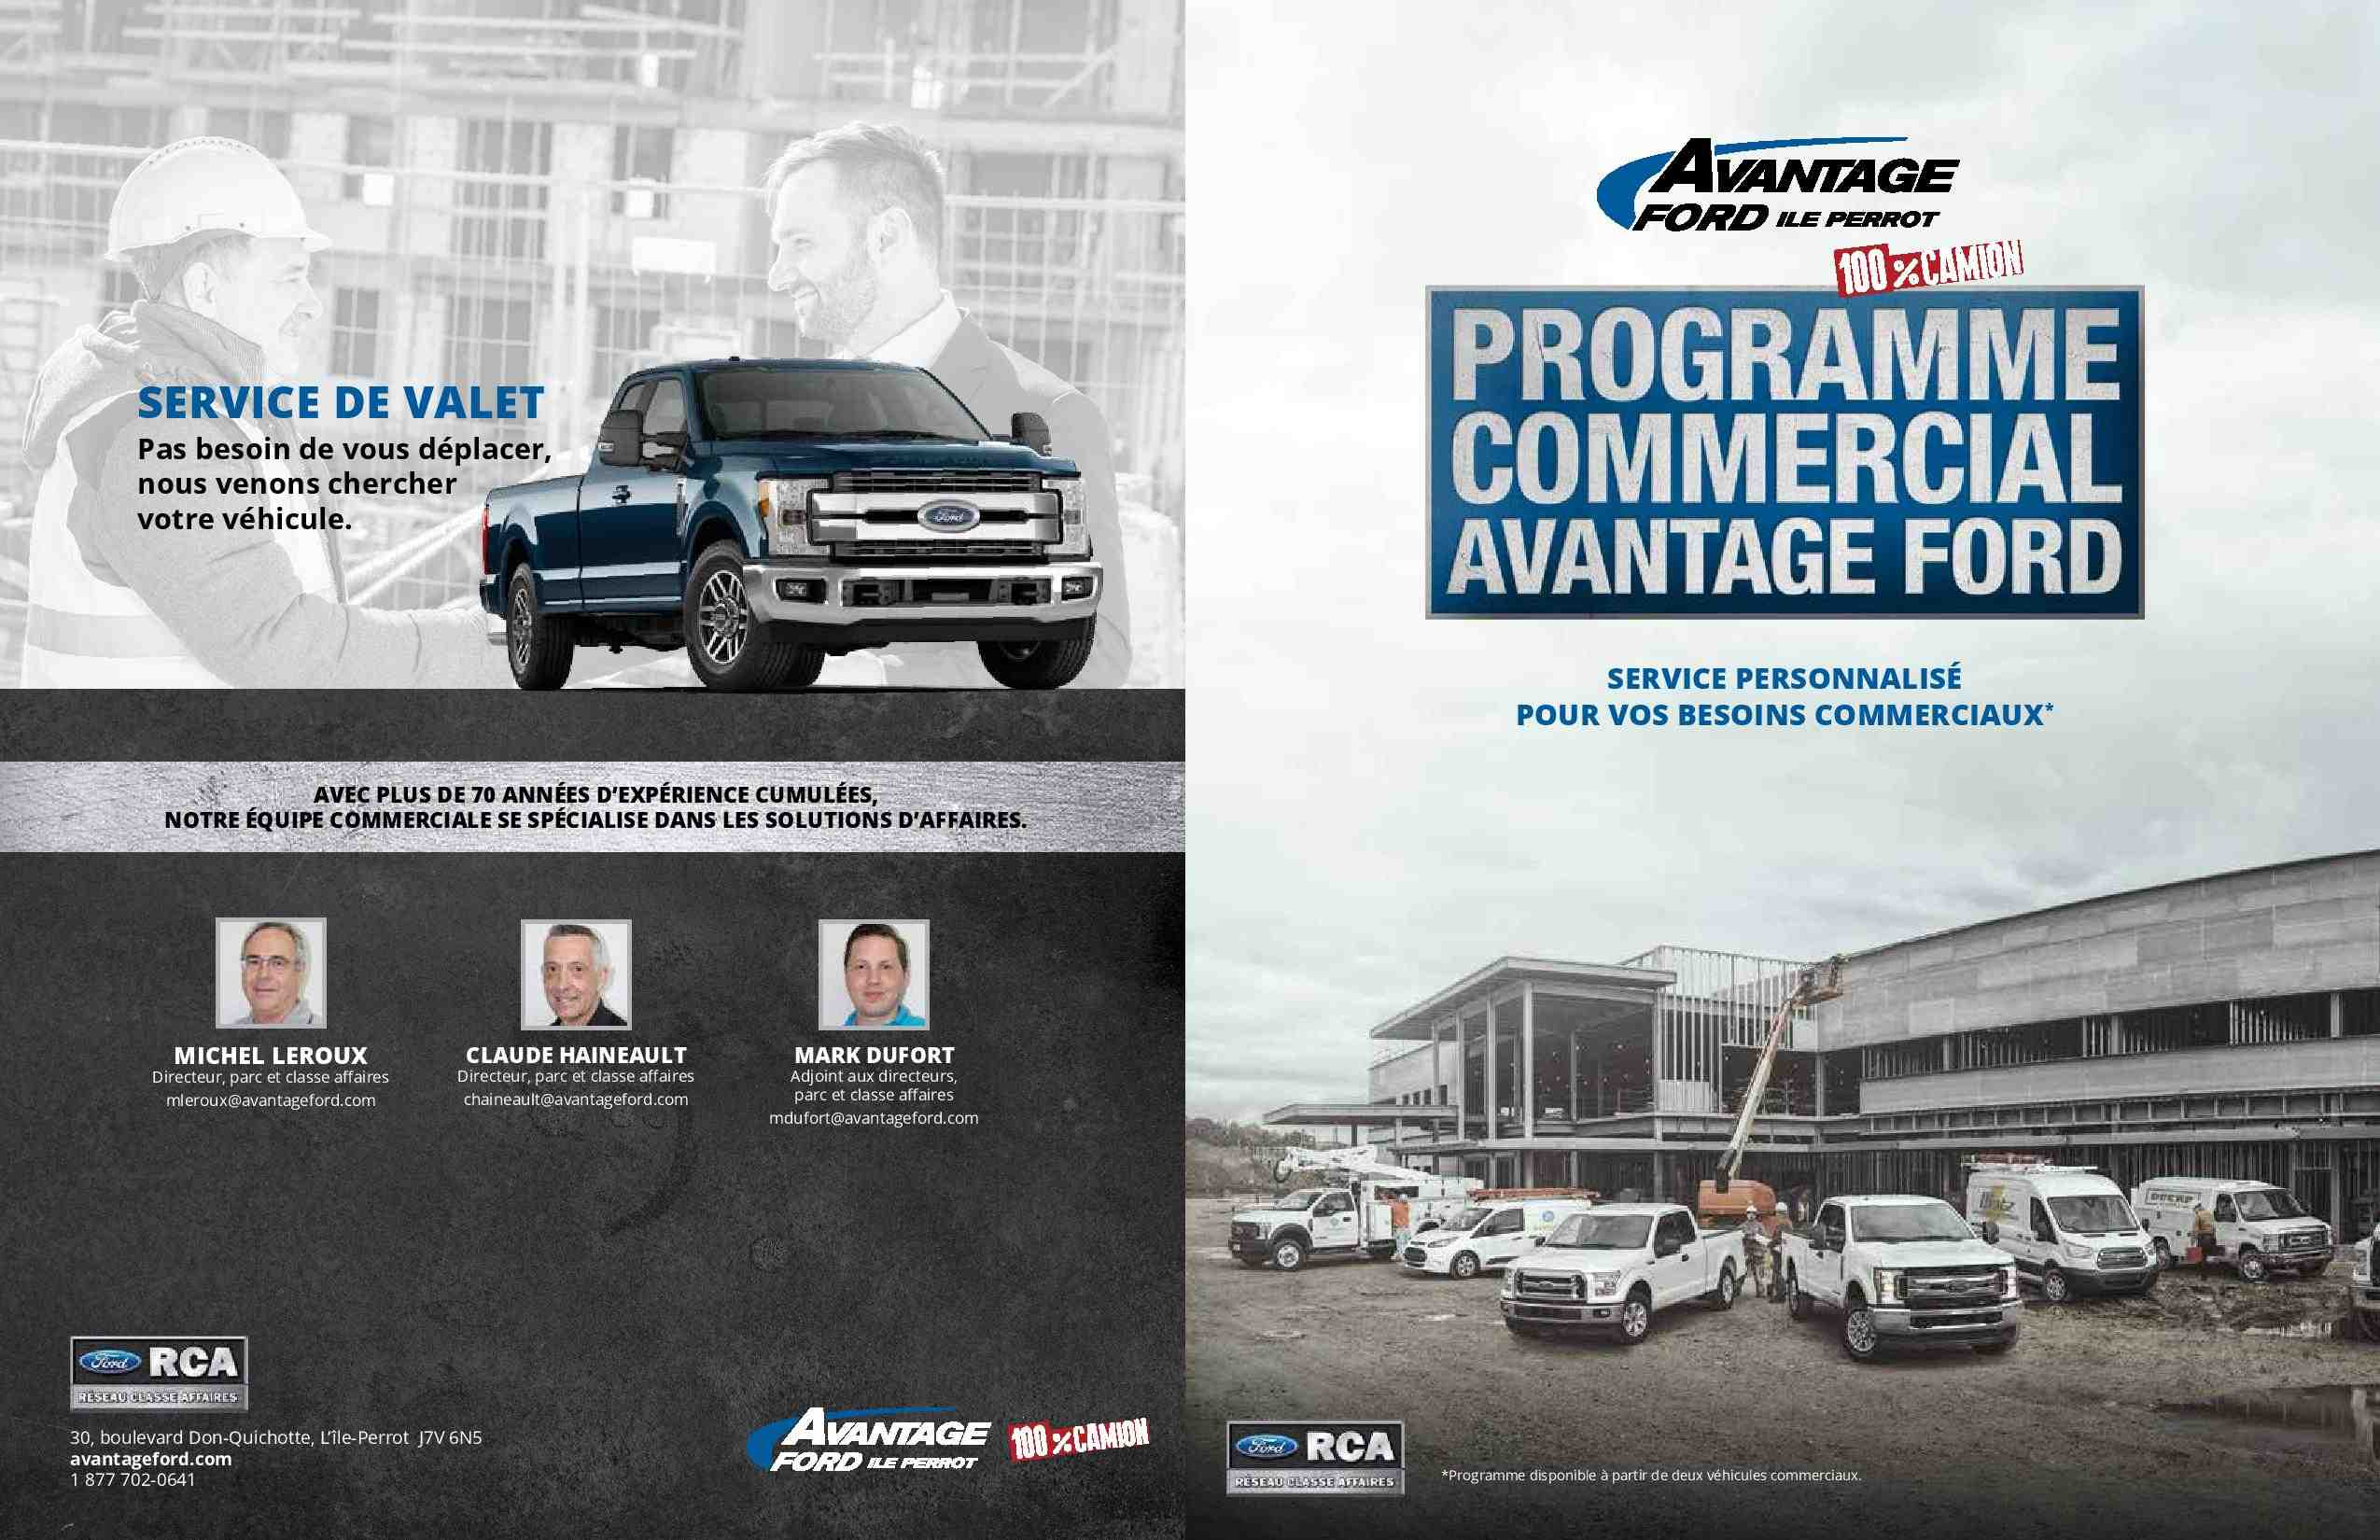 Advantage Ford Commercial Program